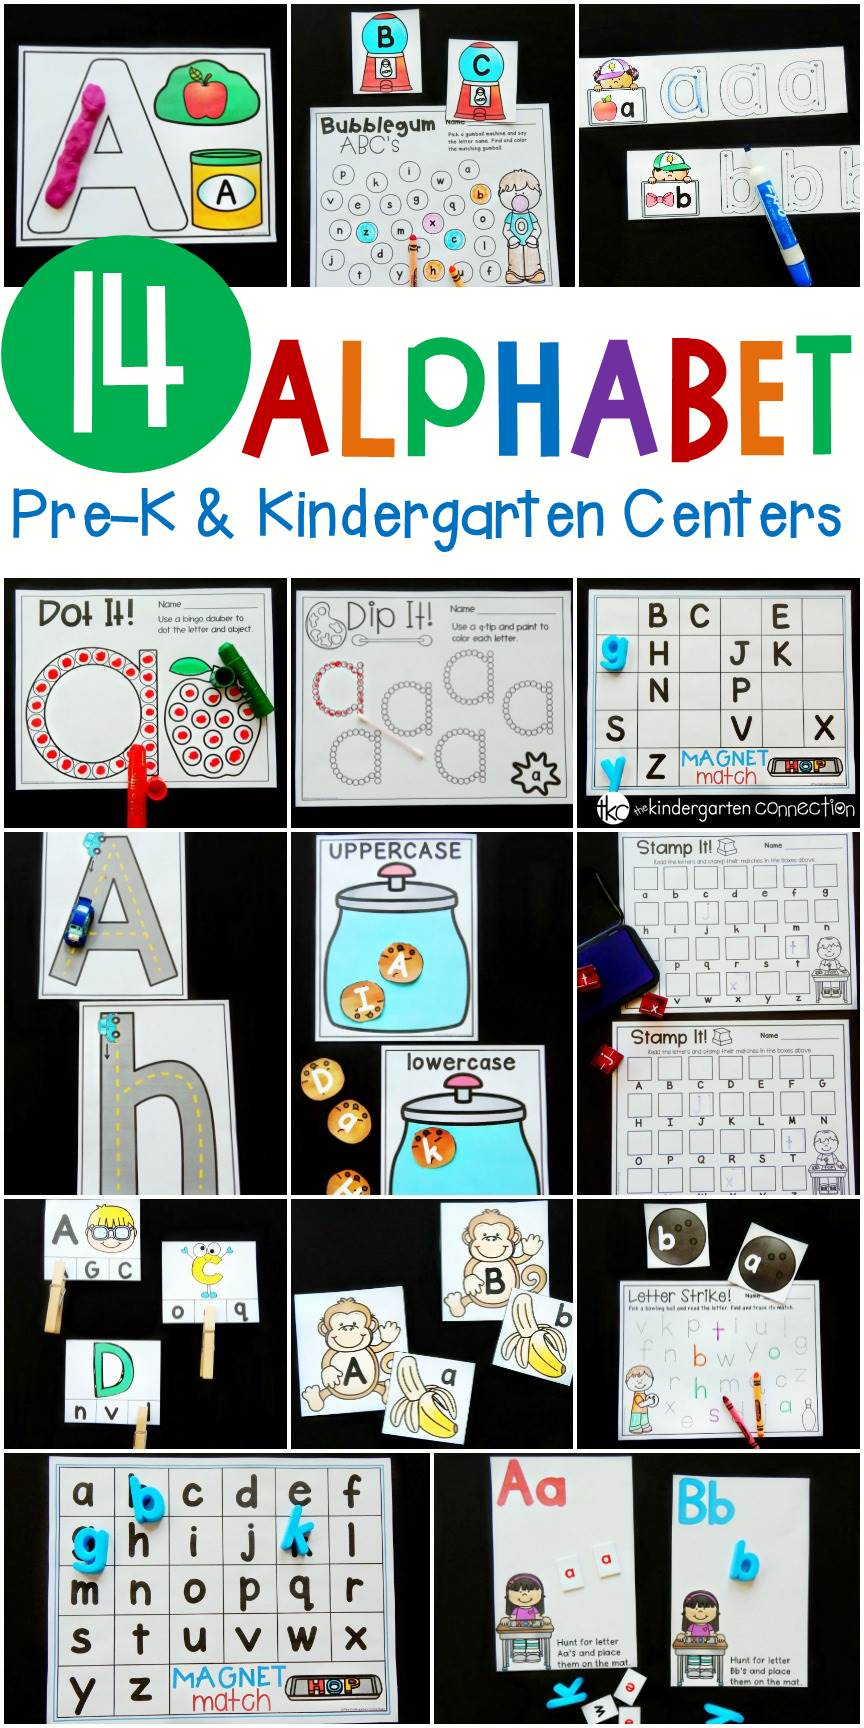 These 14 print and play alphabet activities and centers are perfect for Pre-K and Kindergarten classrooms to explore letters!